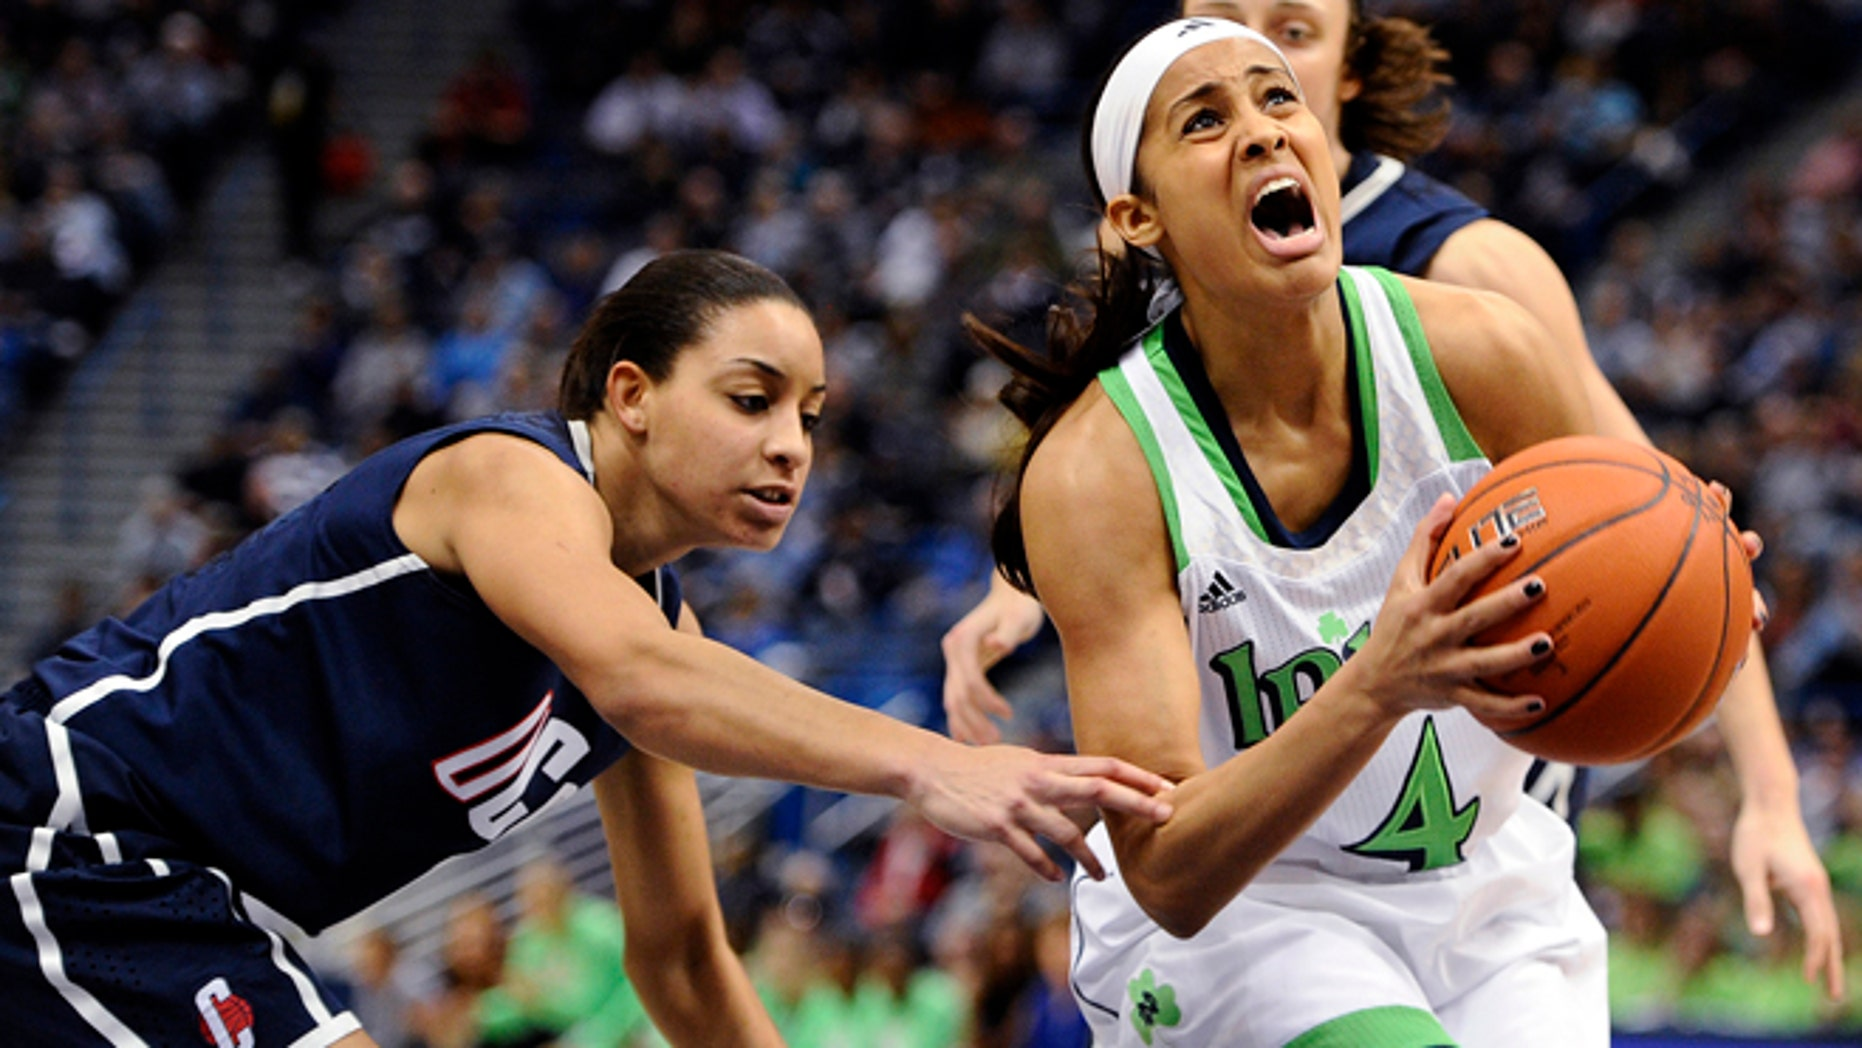 In this March 12, 2013, file photo, Notre Dame's Skylar Diggins (4) is fouled by Connecticut's Bria Hartley, left, in the first half of an NCAA college basketball game in the final of the Big East Conference tournament in Hartford, Conn.